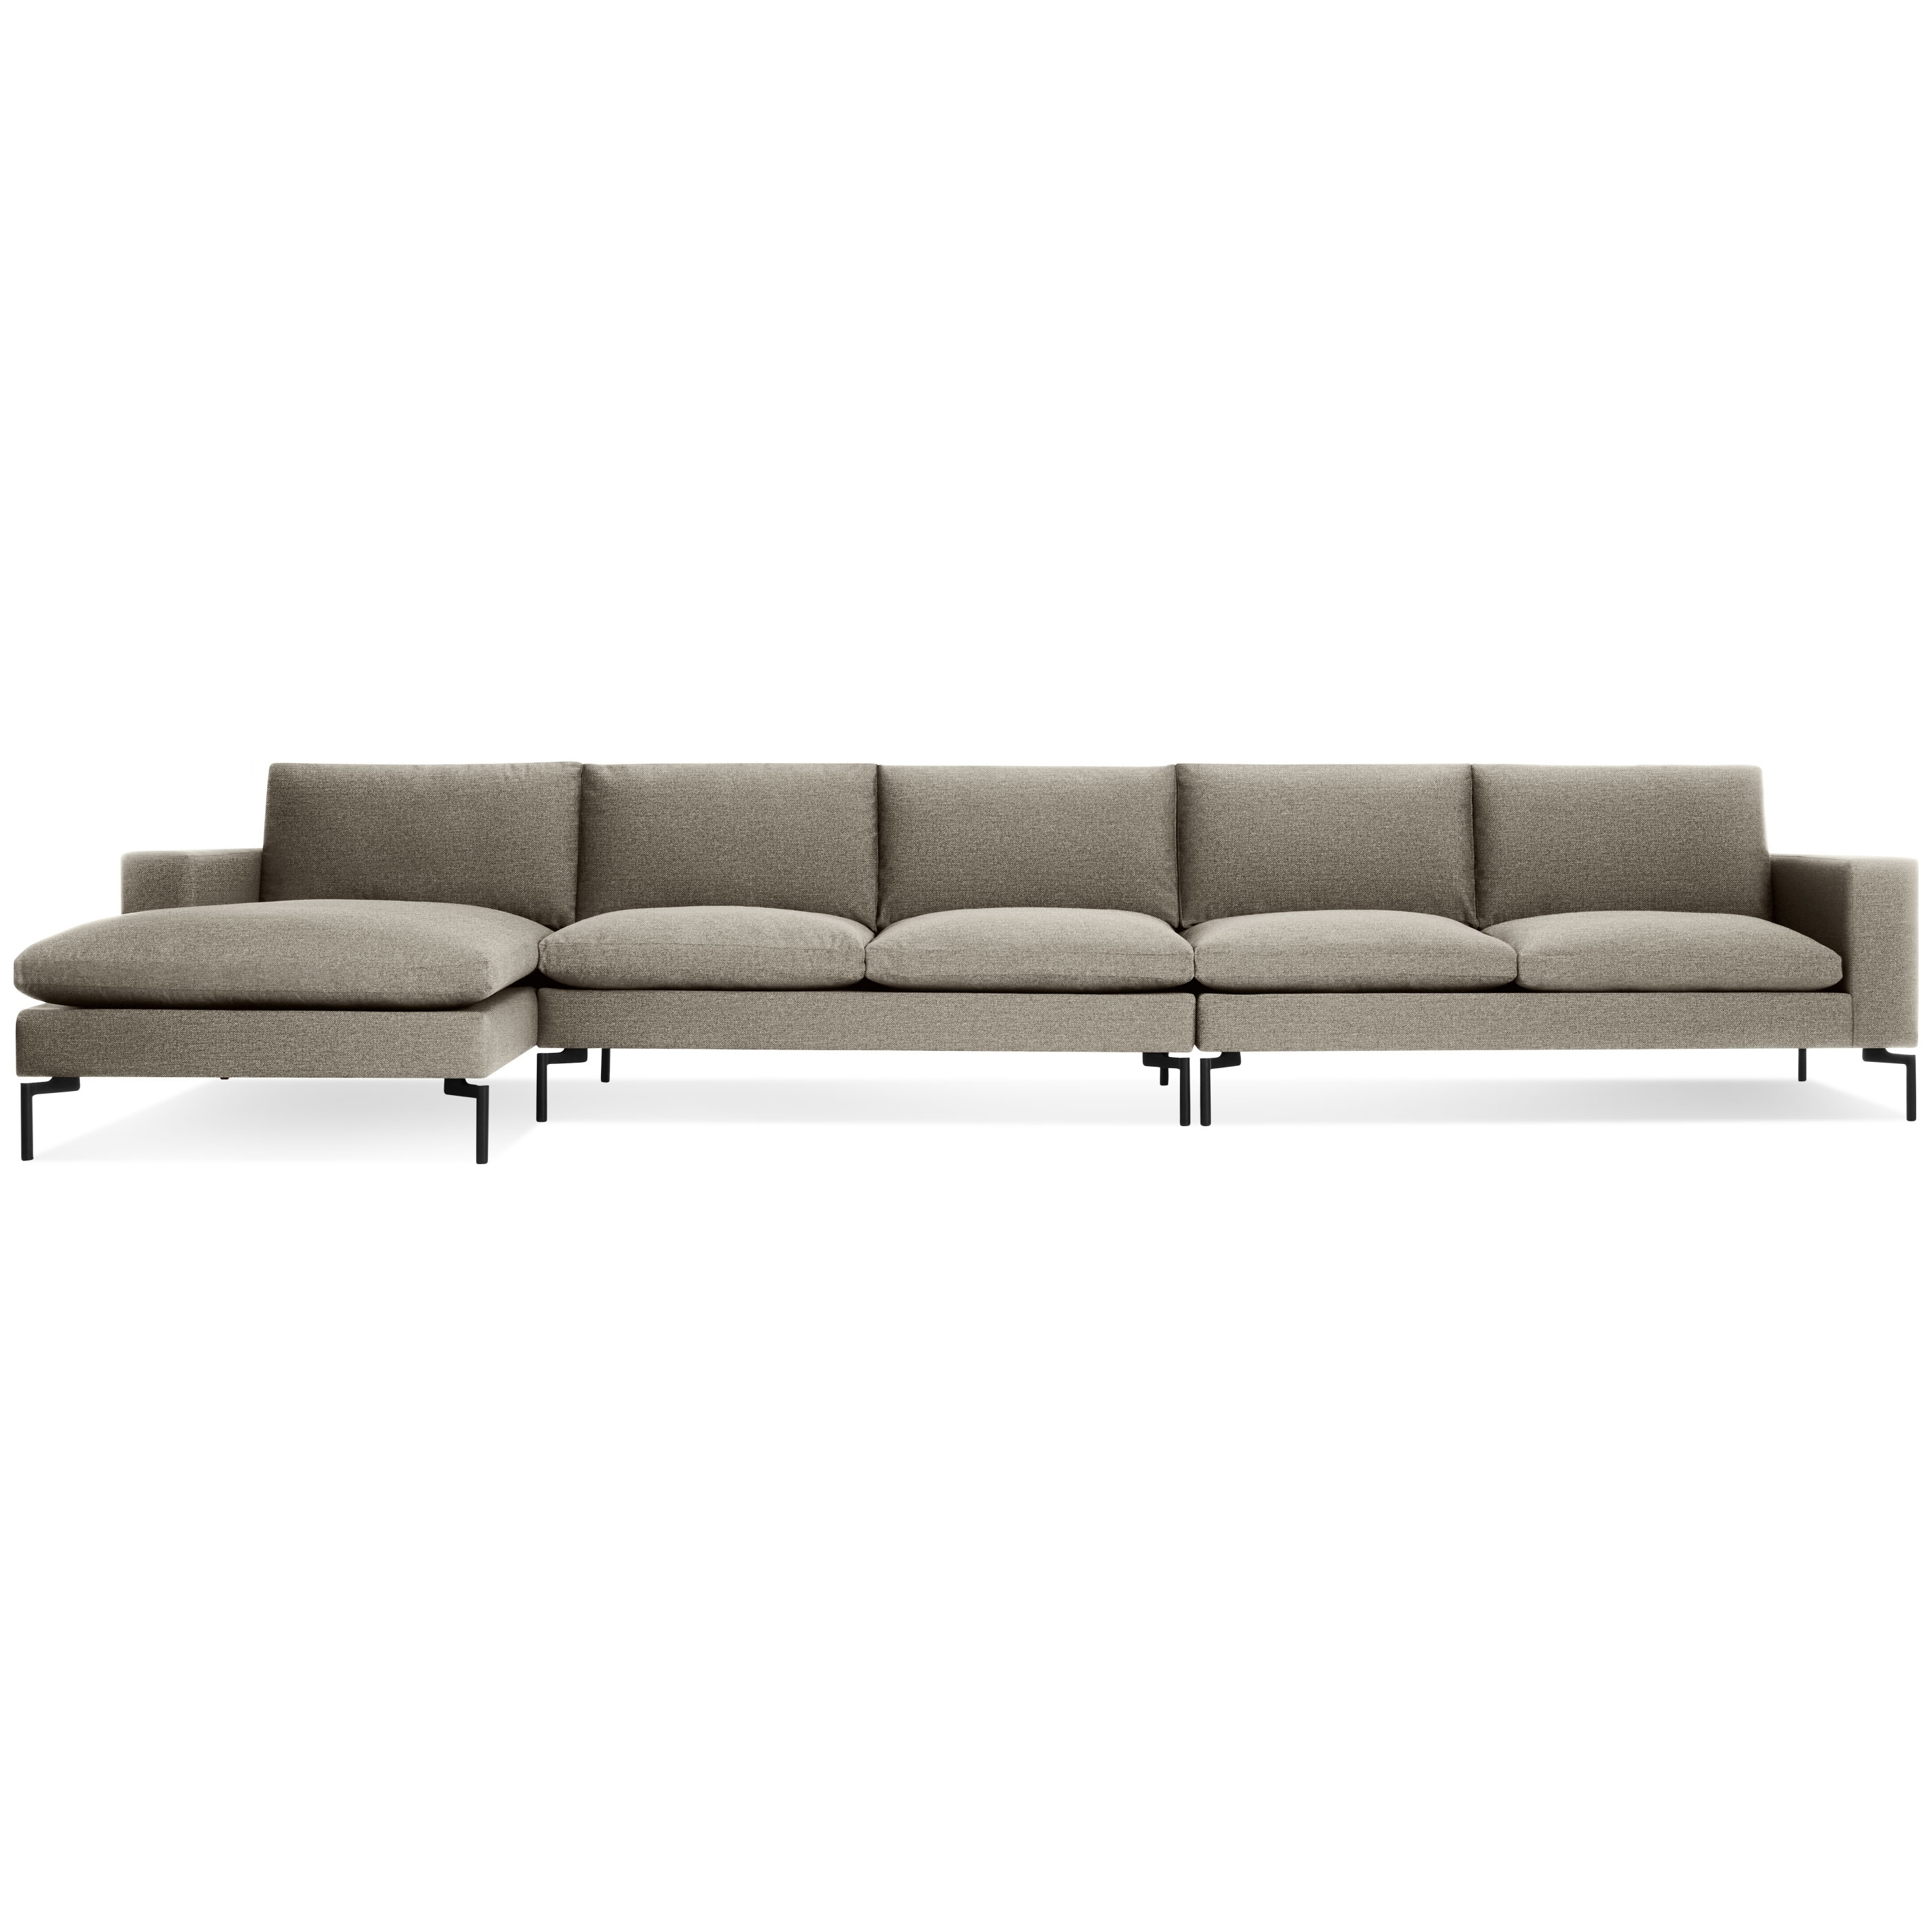 New Standard Medium Sectional Sofa – Modern Sectional Sofas (View 9 of 20)